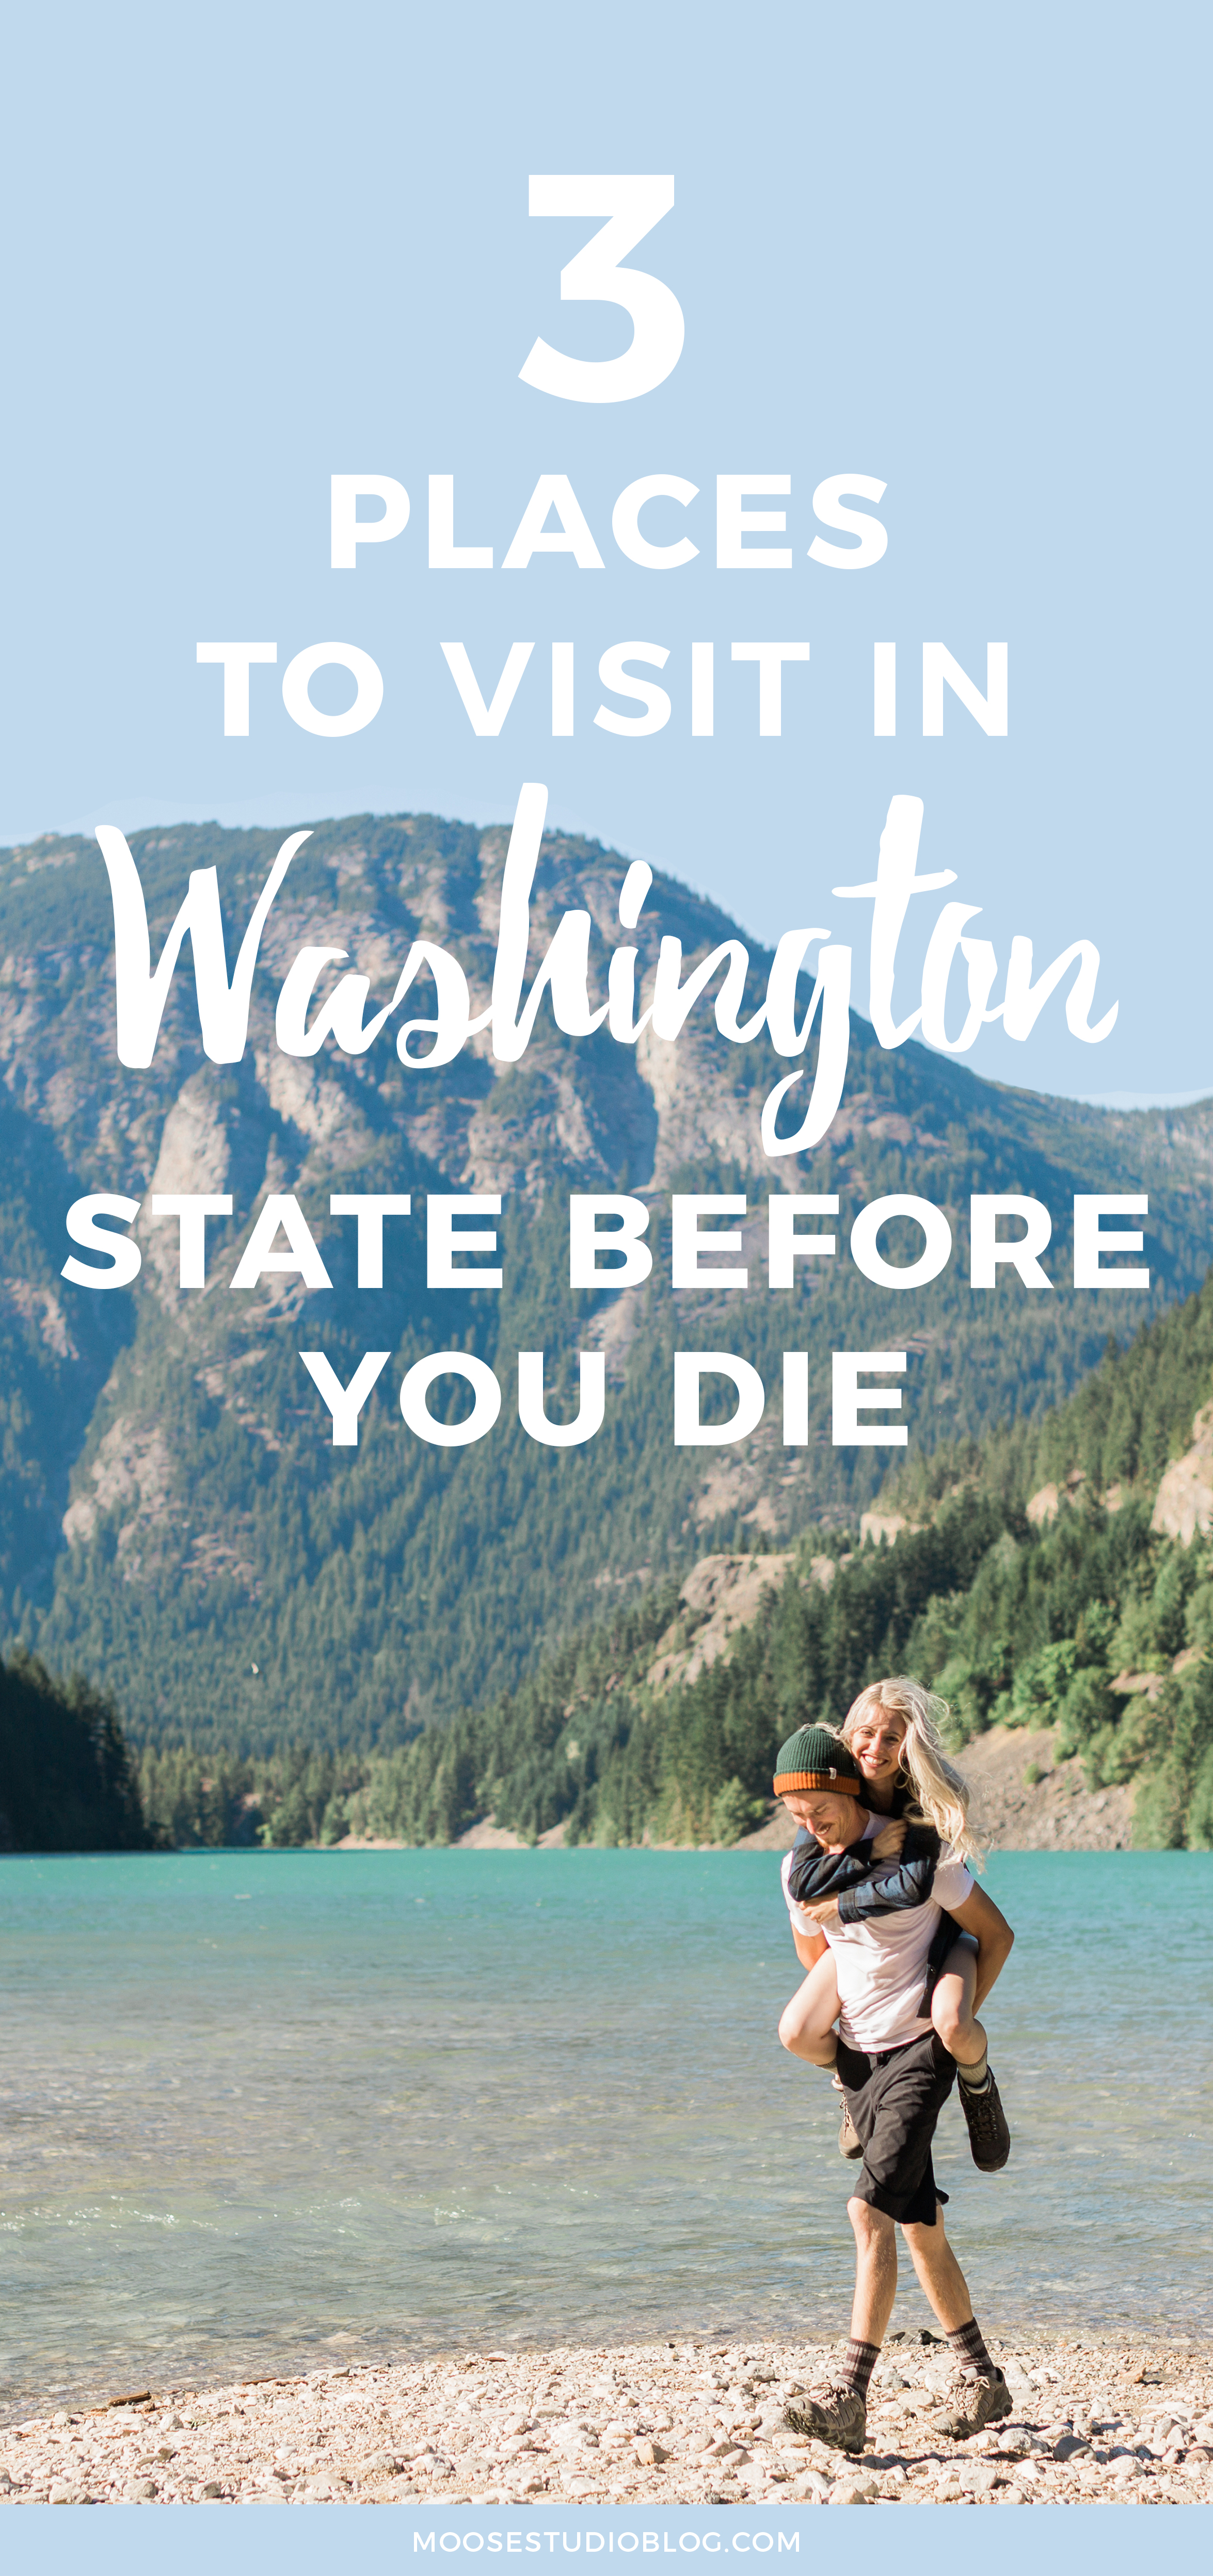 washington visit places die before surreal totally state place travel snoqualmie falls